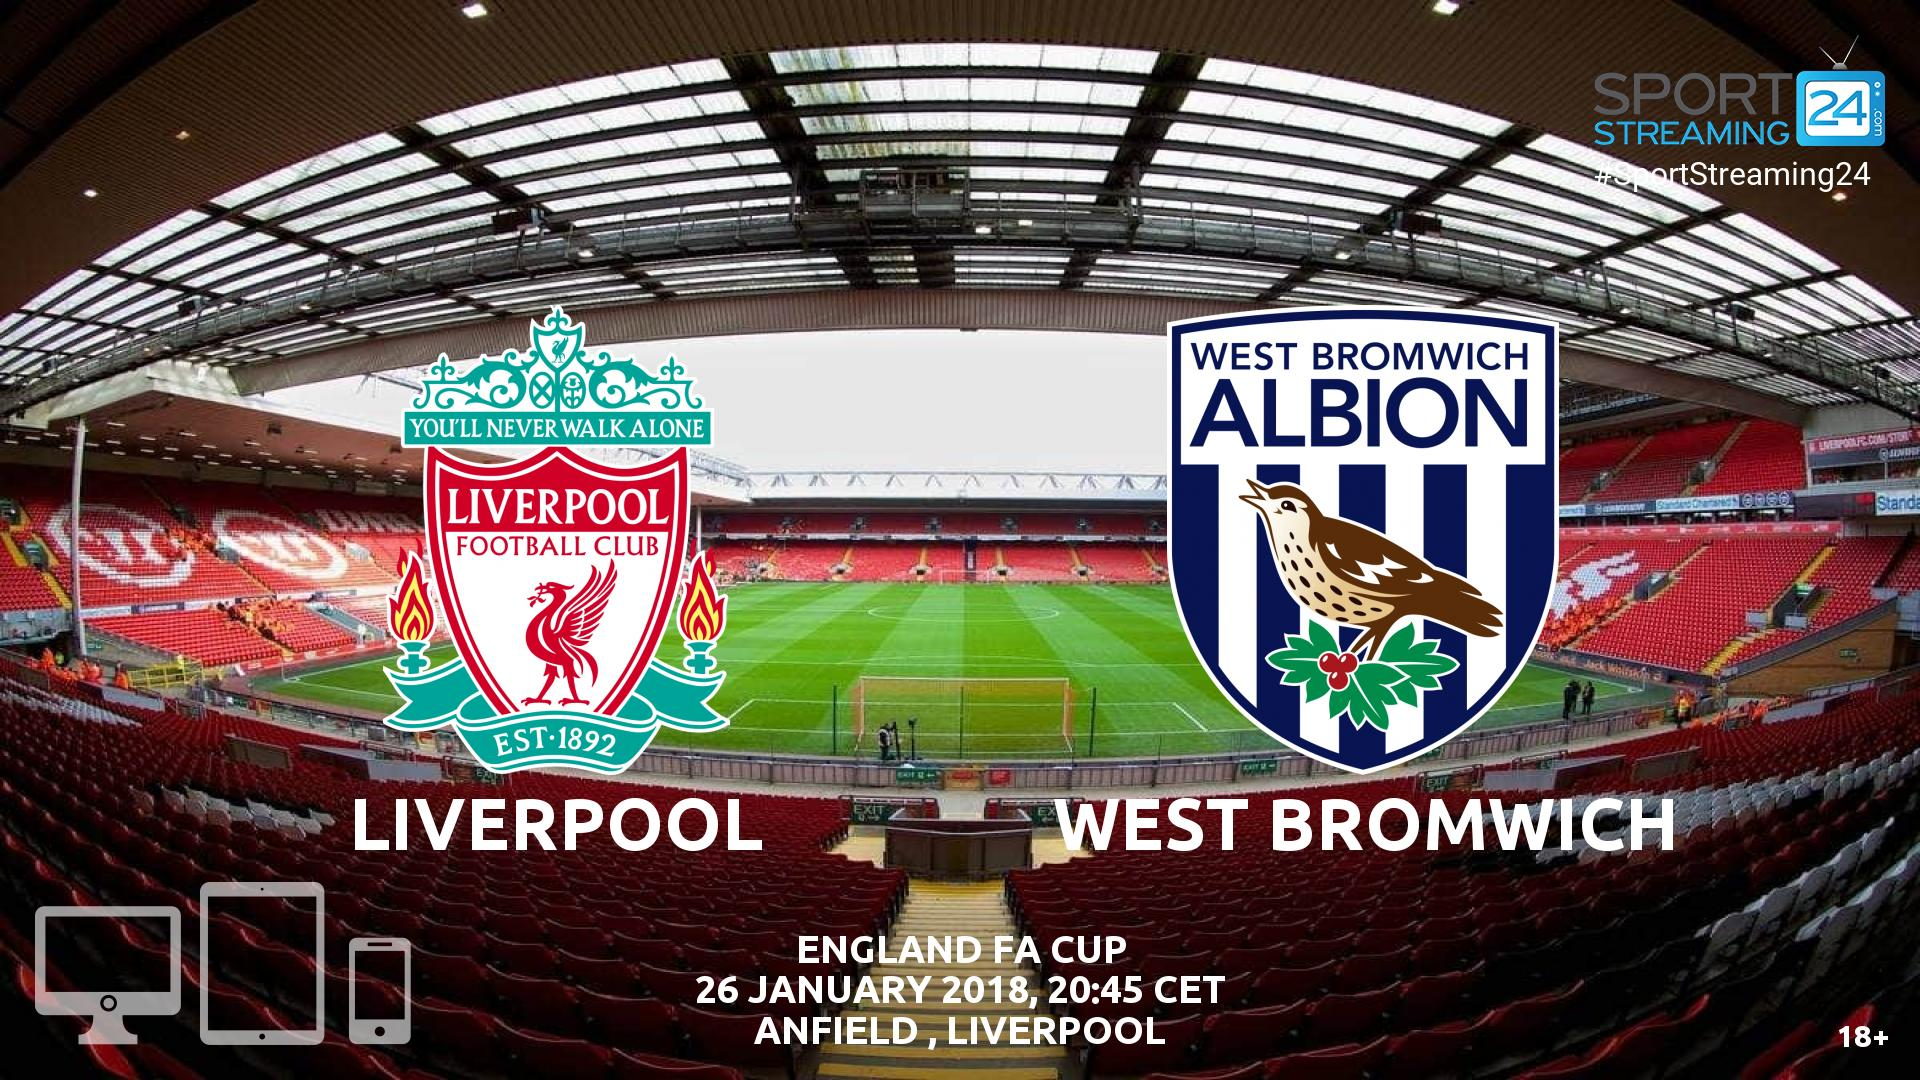 Liverpool v West Brom Live Stream FA Cup | SportStreaming24